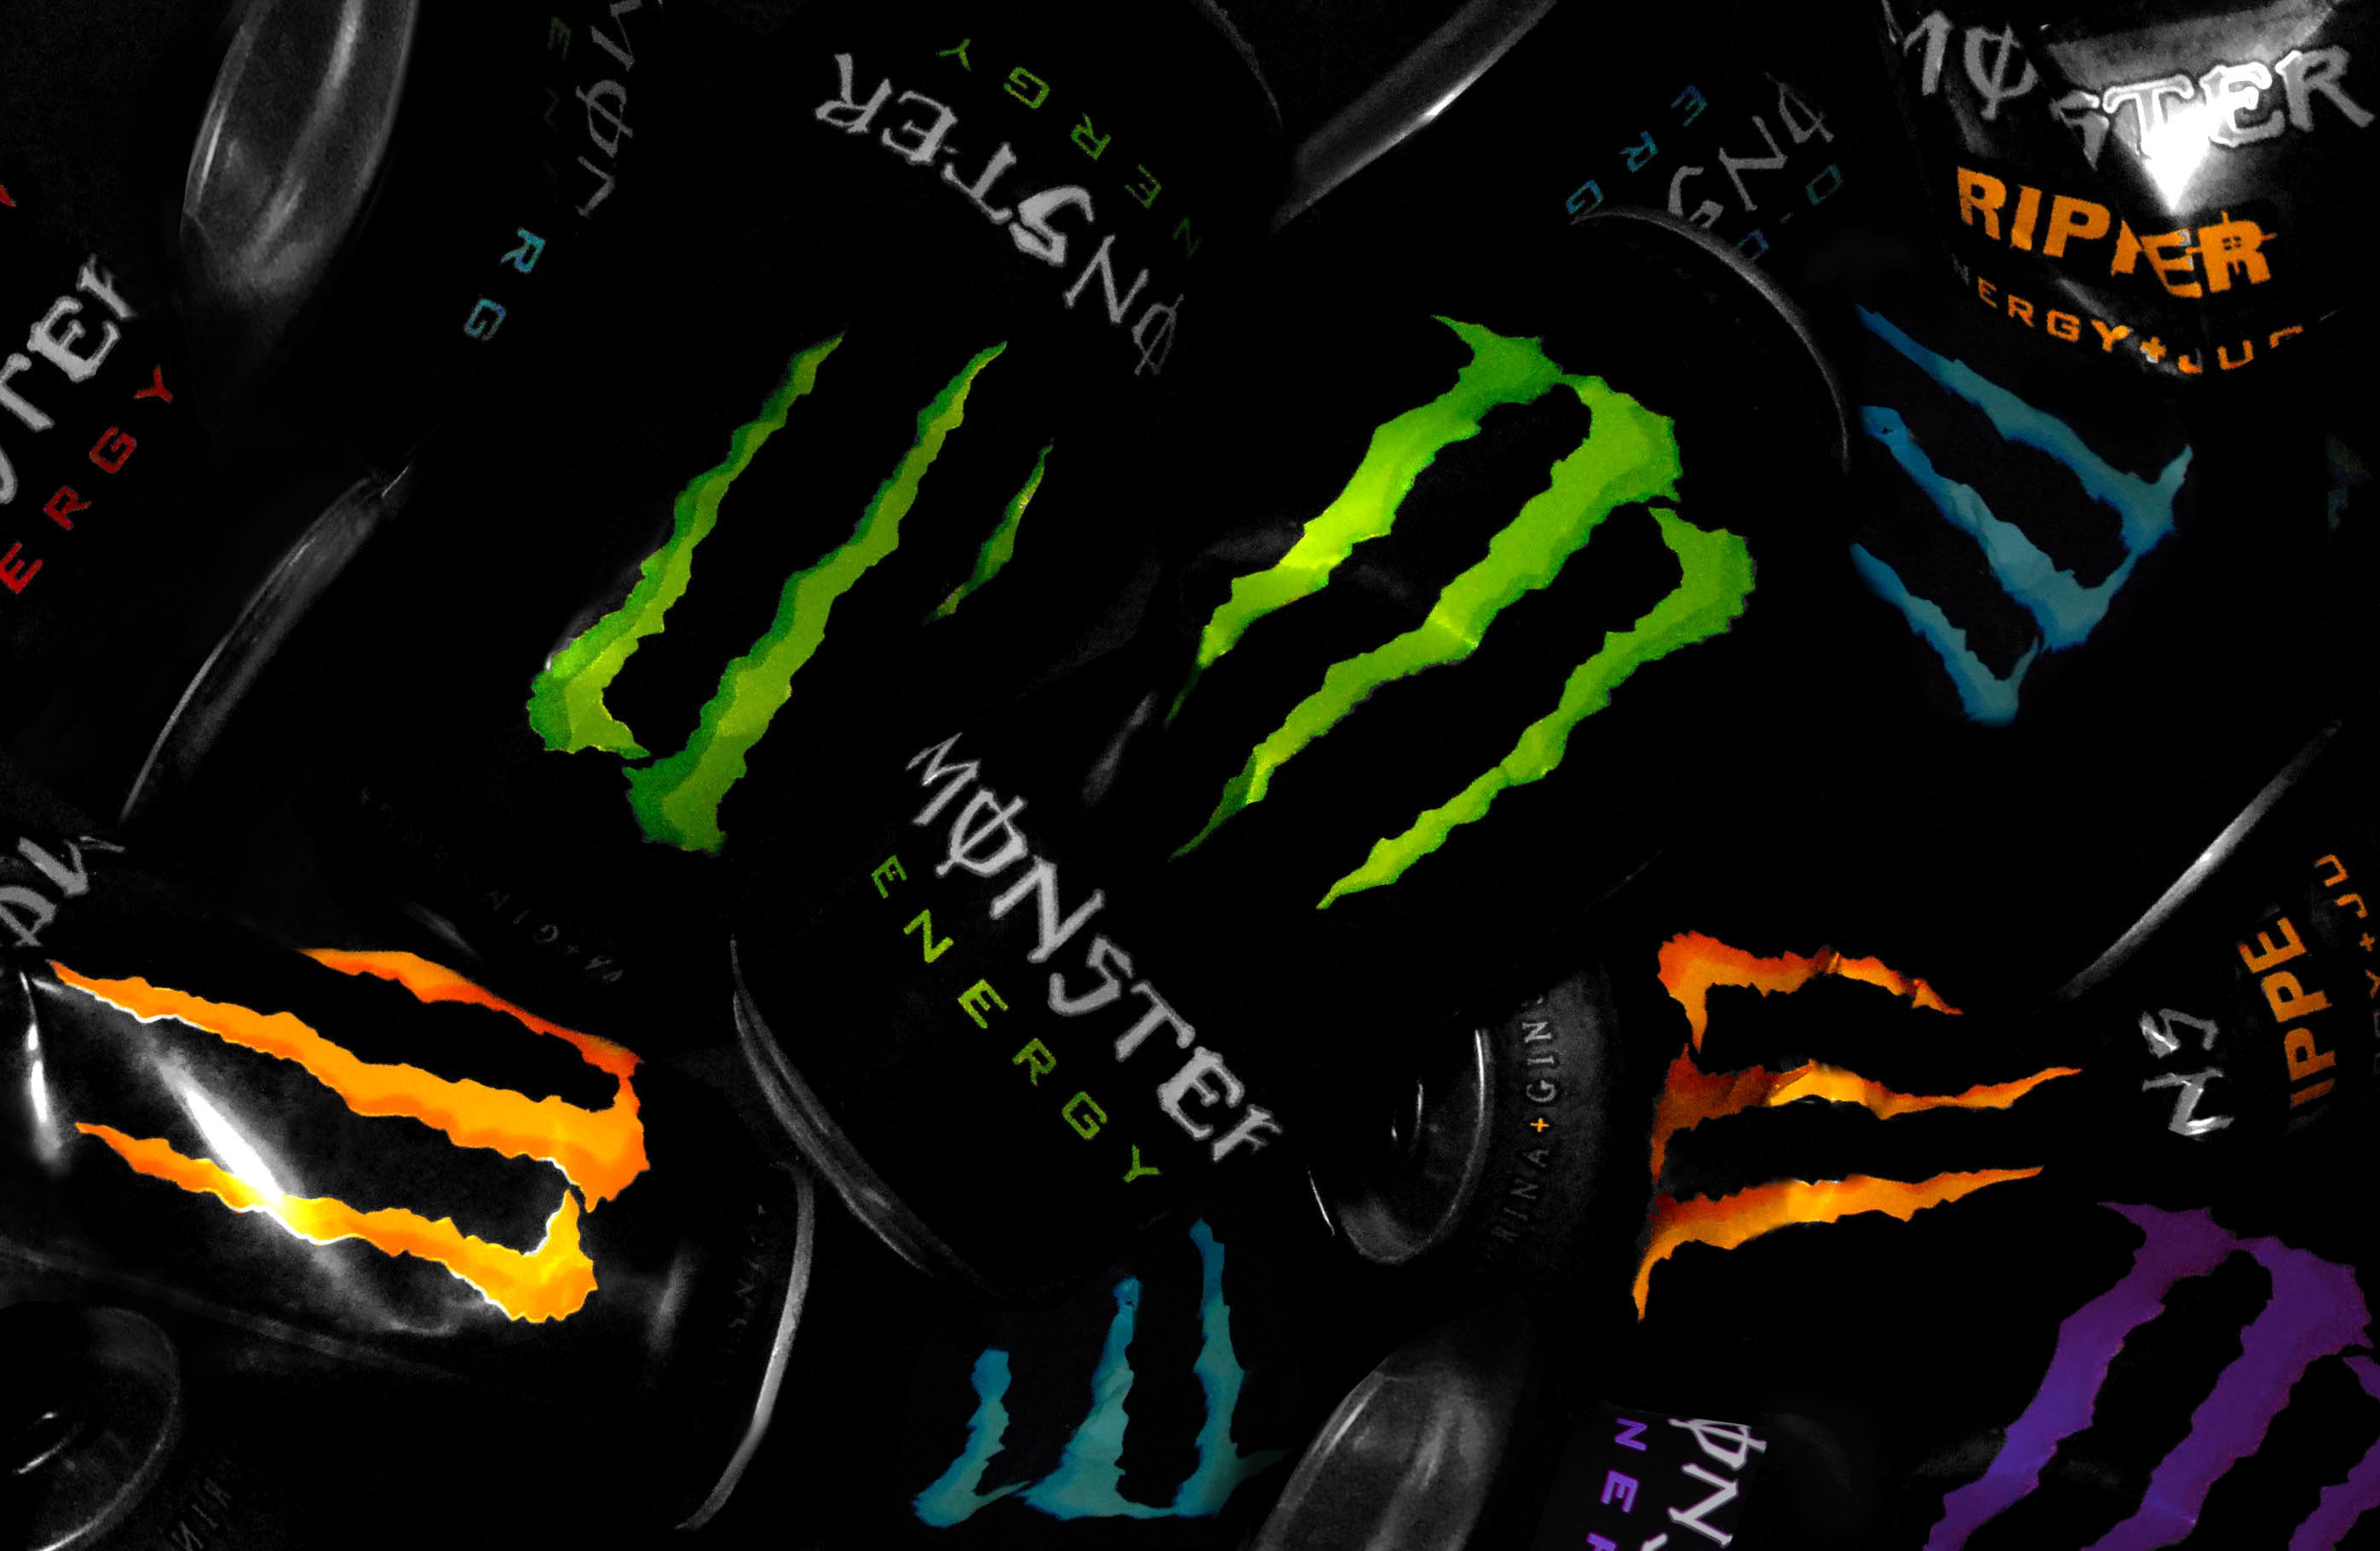 Monster HD wallpaper 0019   Album Monster Wallpaper wallpapers 2794x1821